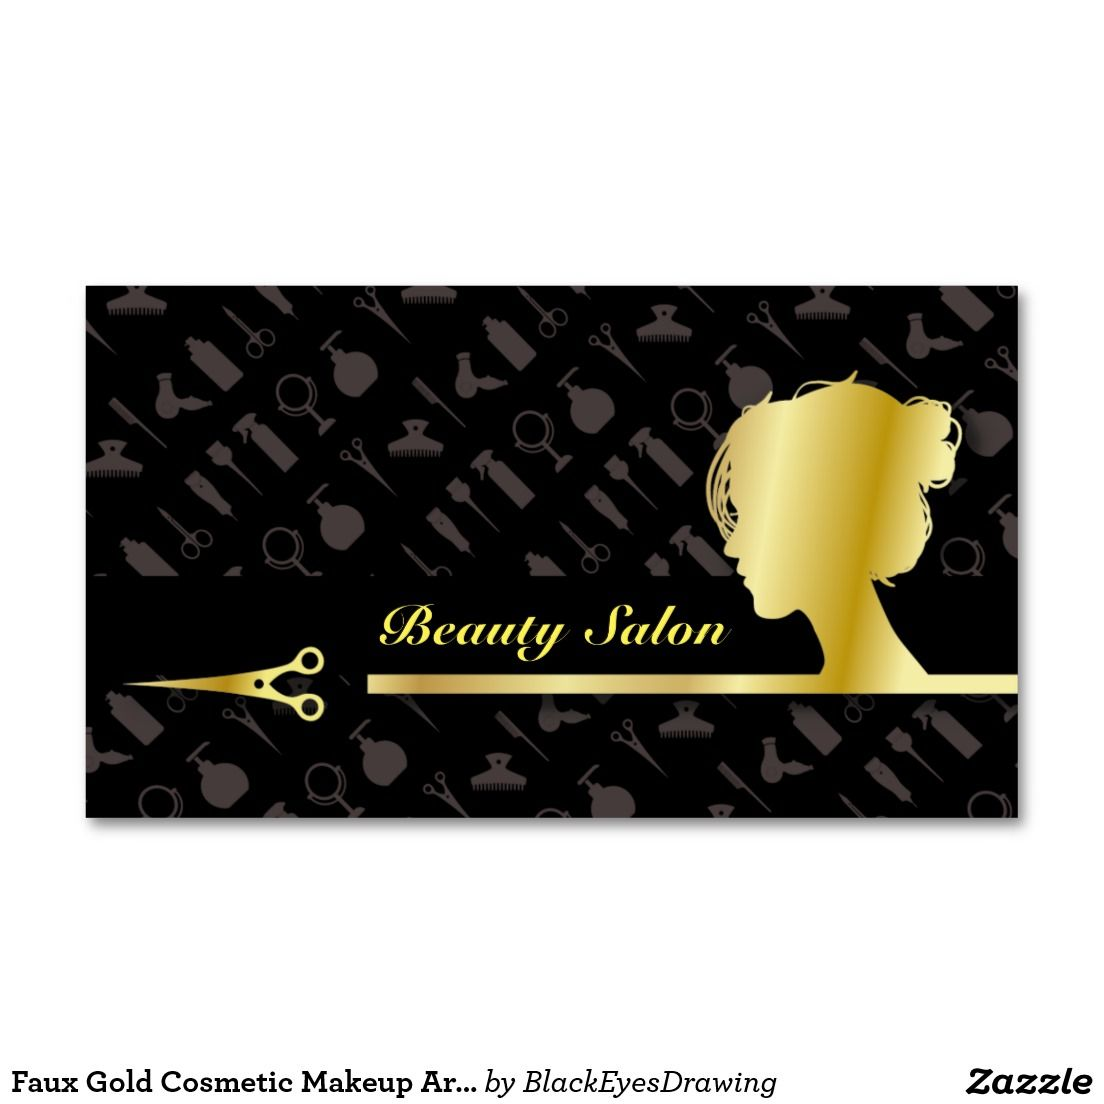 Faux Gold Cosmetic Makeup Artist Beauty Salon Business Card ...